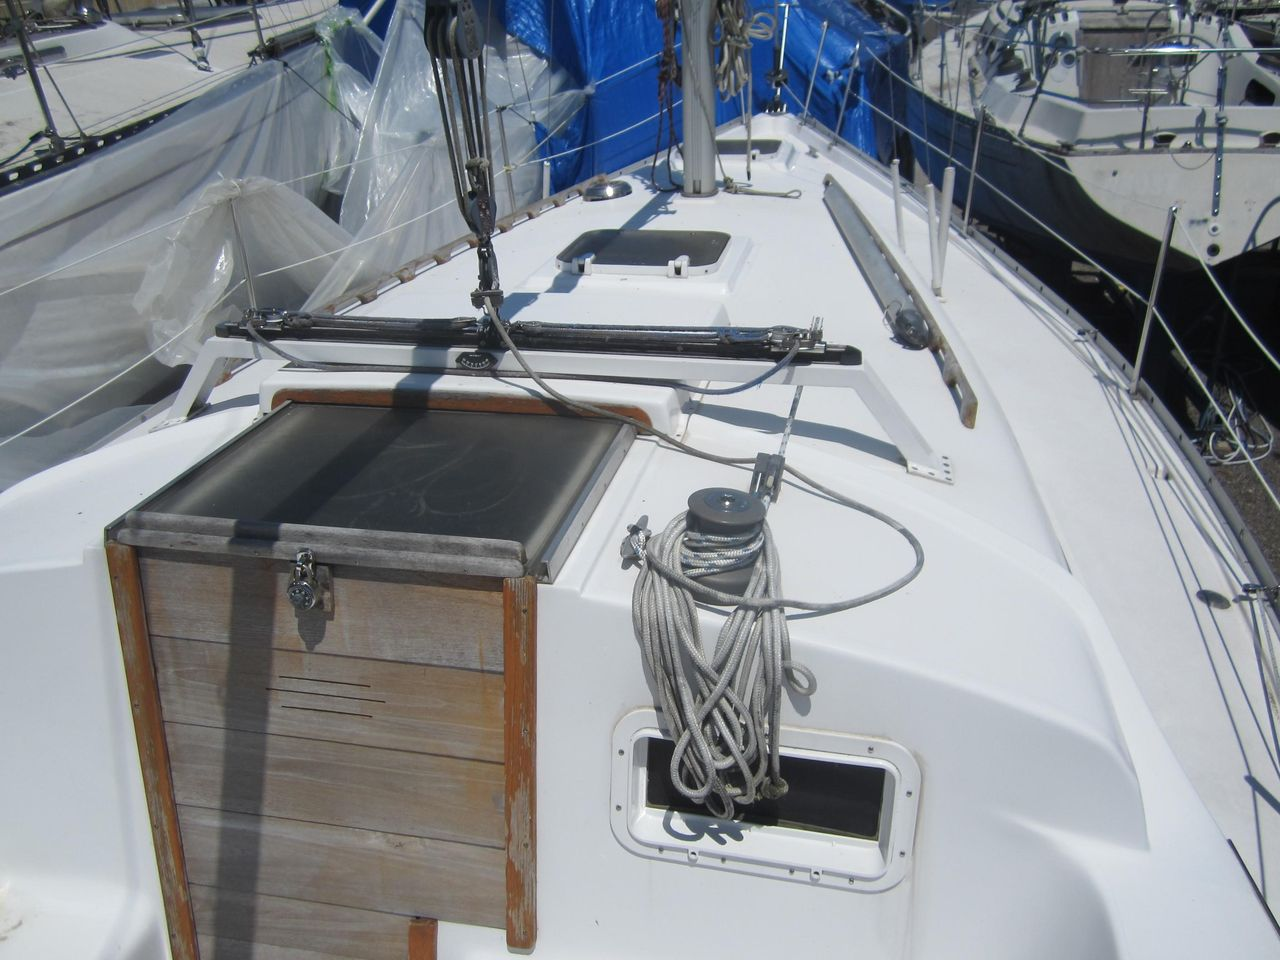 1980 Used Irwin Citation 34 Sloop Sailboat For Sale